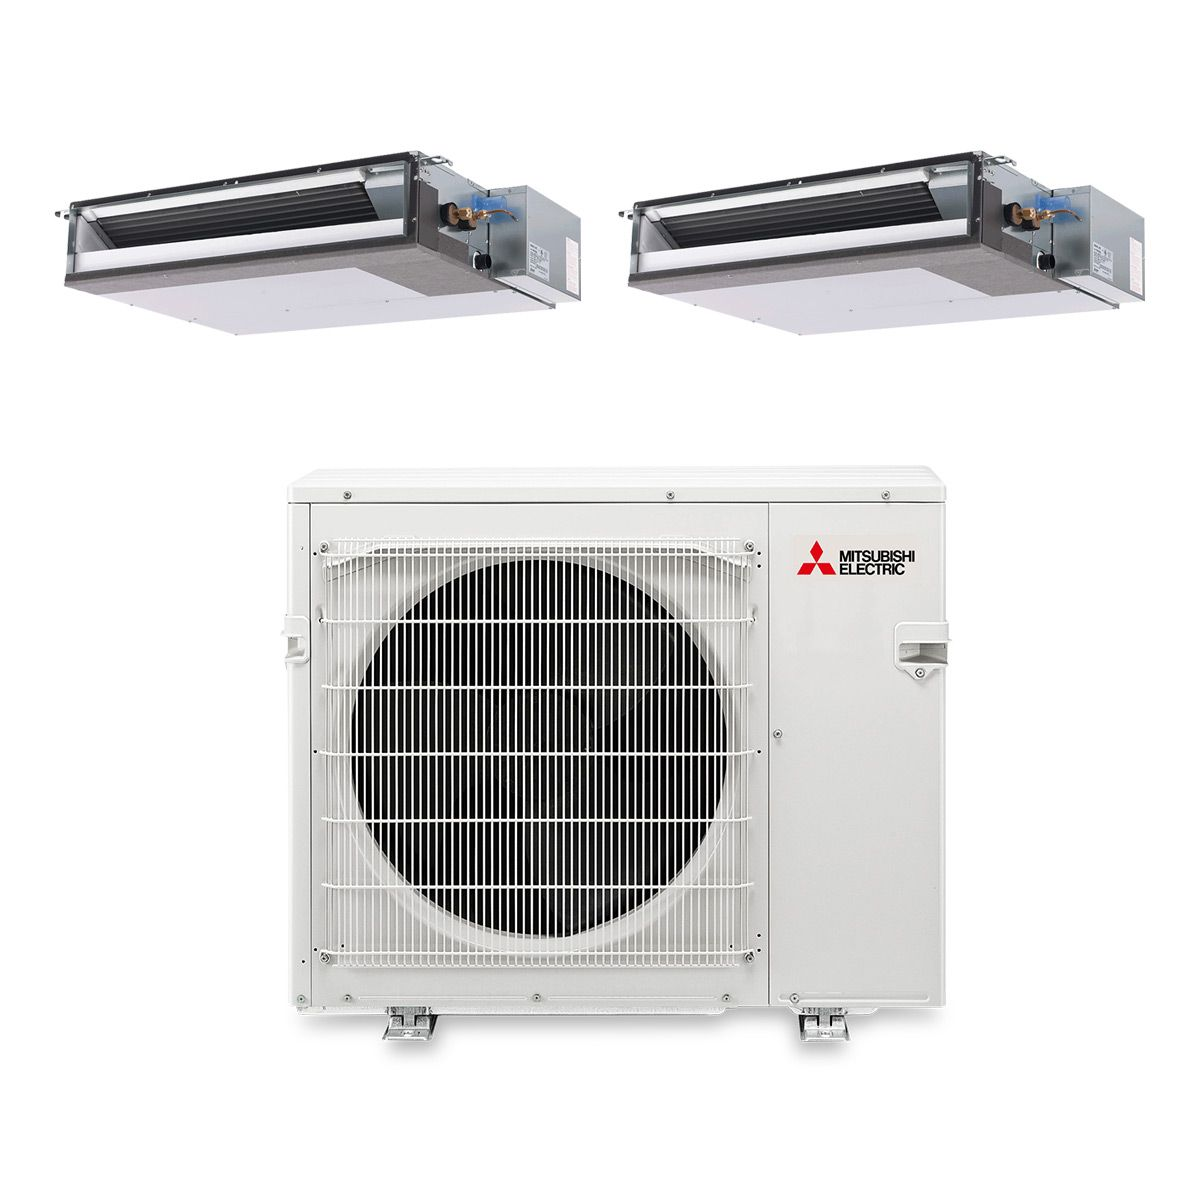 choes mitsubishi babypro split no unit work ducted club ac duct f heing